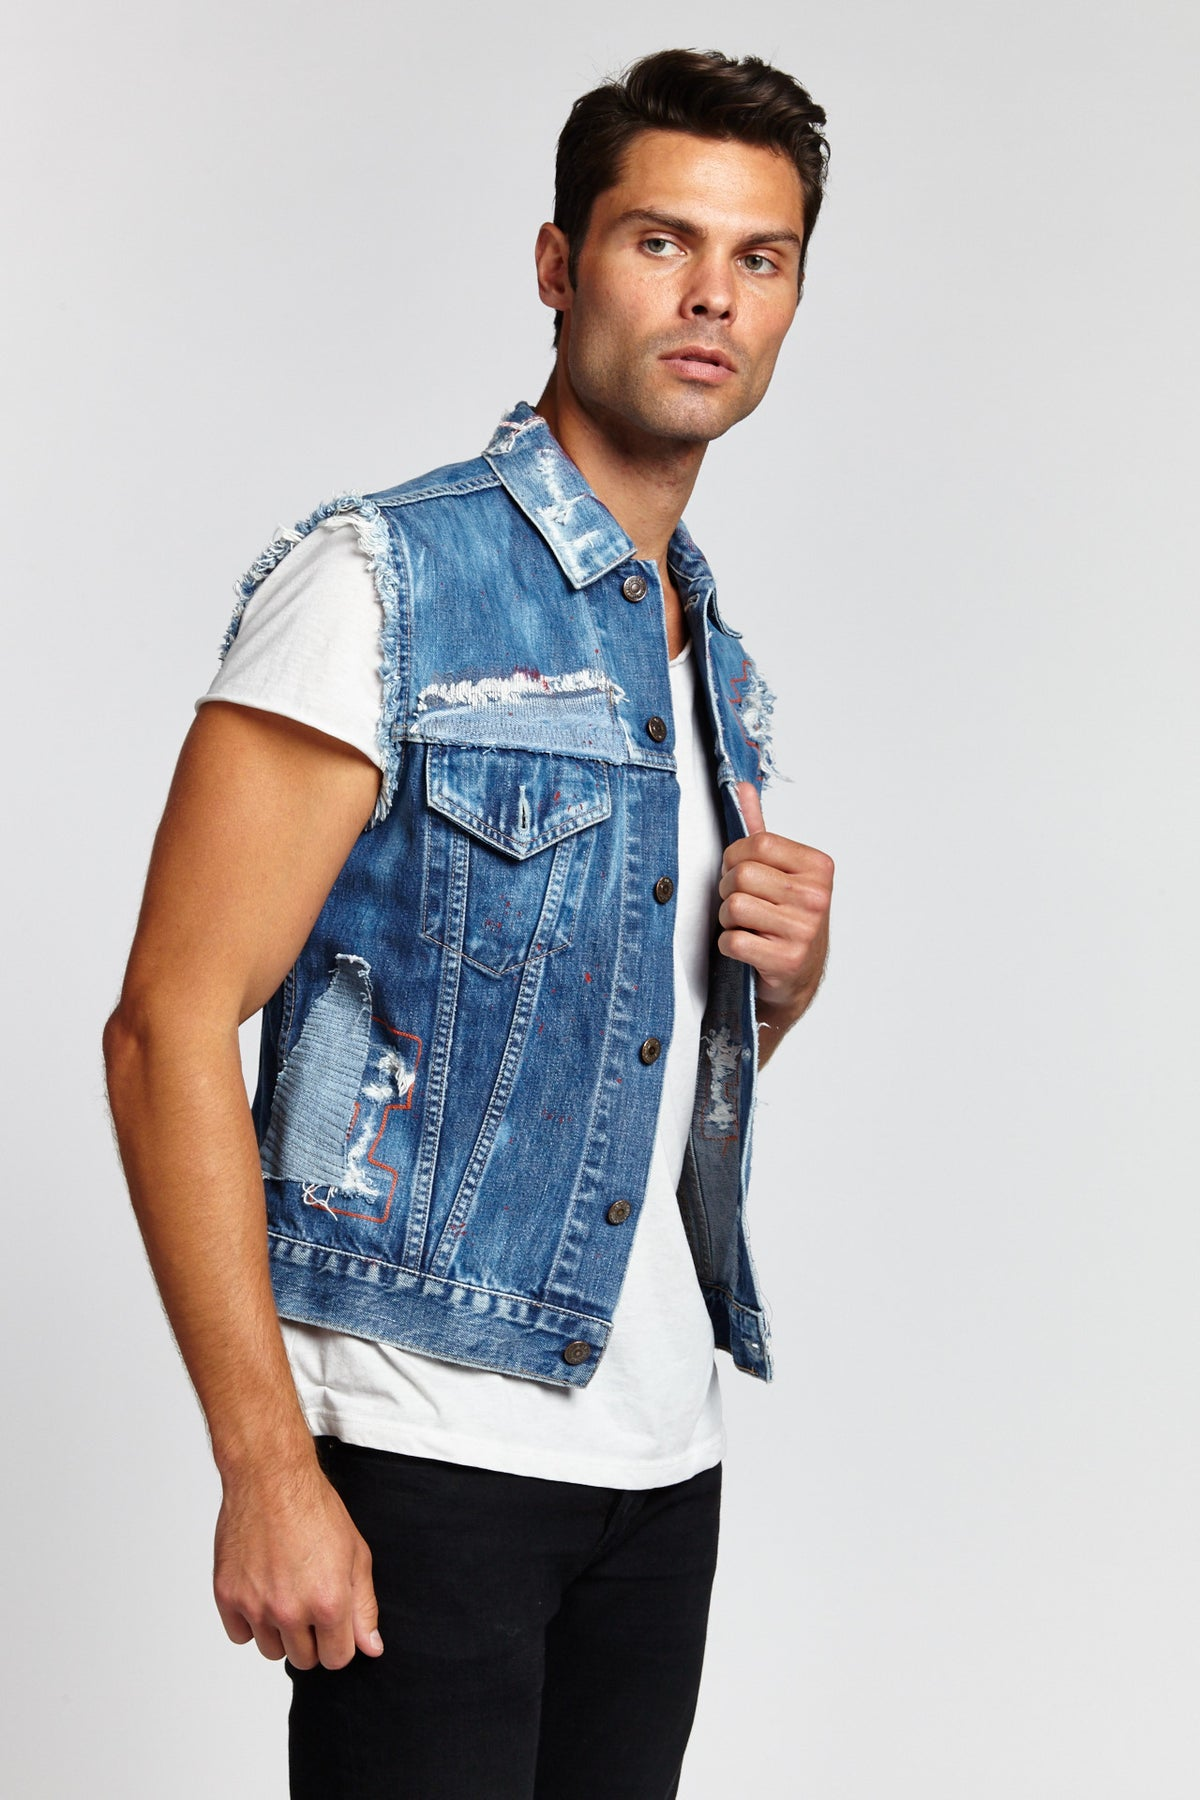 LETTERING SLEEVELESS COTTON DARK BLUE MEDIUM DENIM VEST-JACKETS-Mundane Official-M-DARK BLUE-Mundane Official